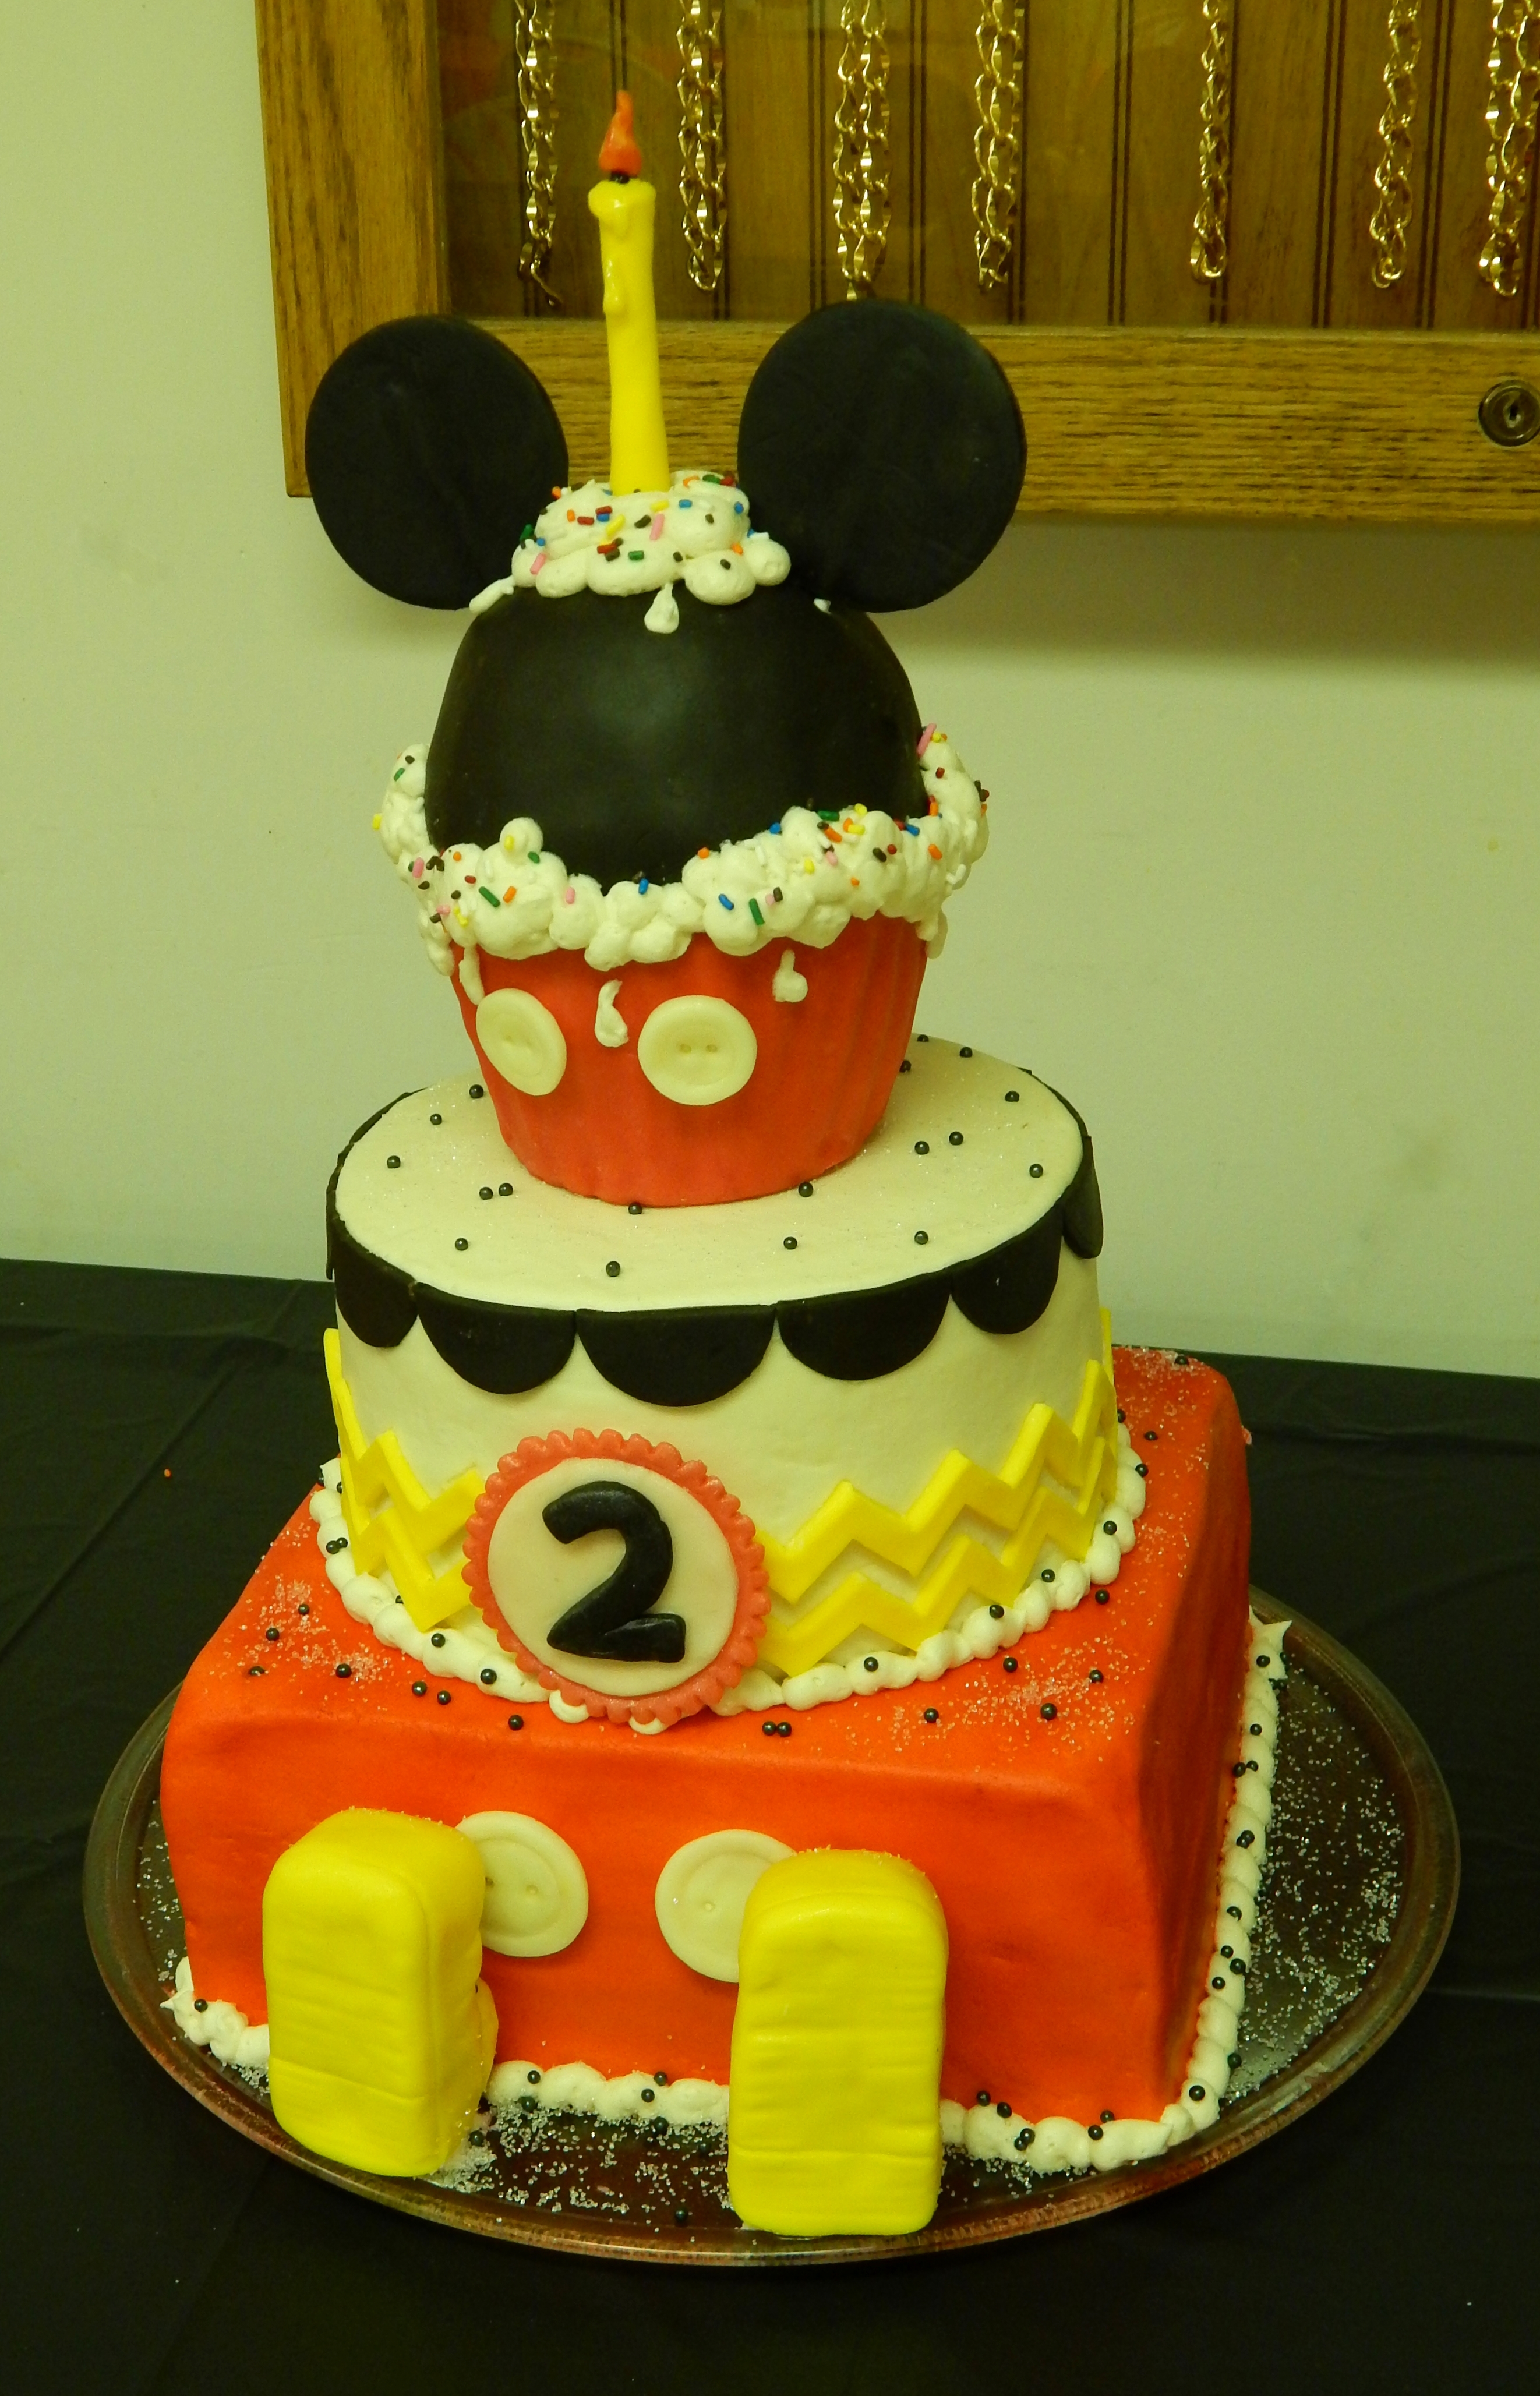 Gavins Mickey Cake 10 Inch Square 2 Layer 8 Round Tier With A Giant Cupcake For The Top All Edible Buttercream And